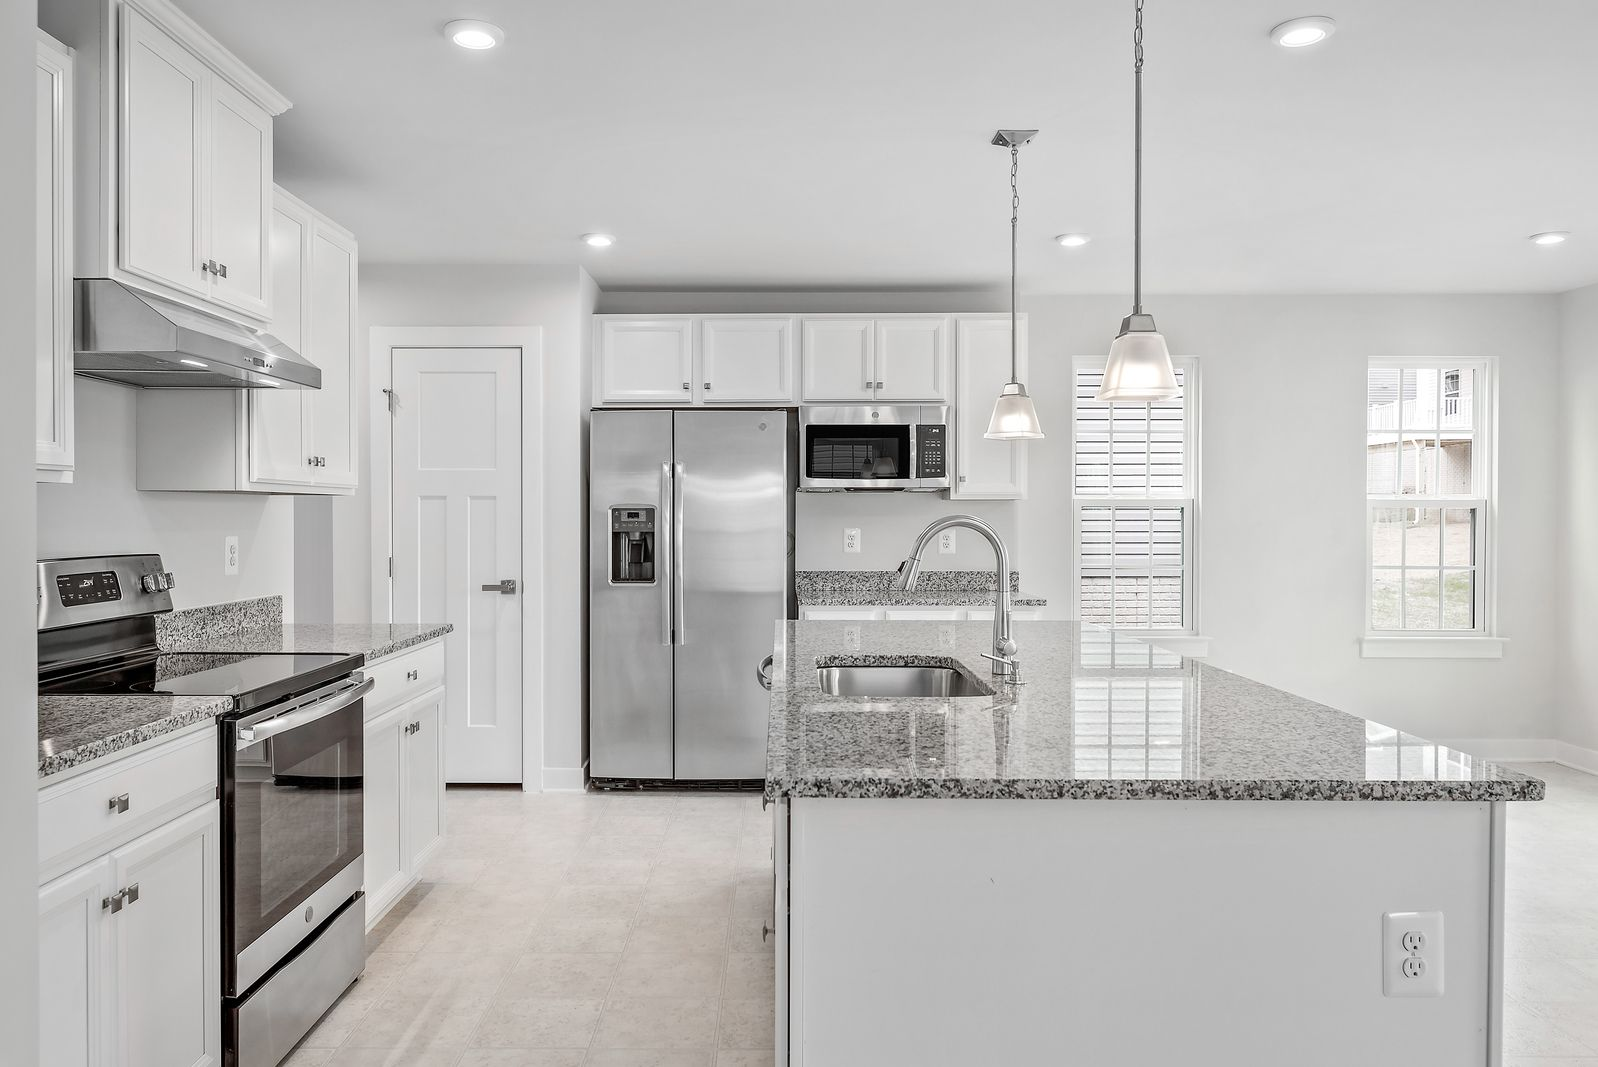 Kitchen featured in the Adrian By Ryan Homes in Cleveland, OH